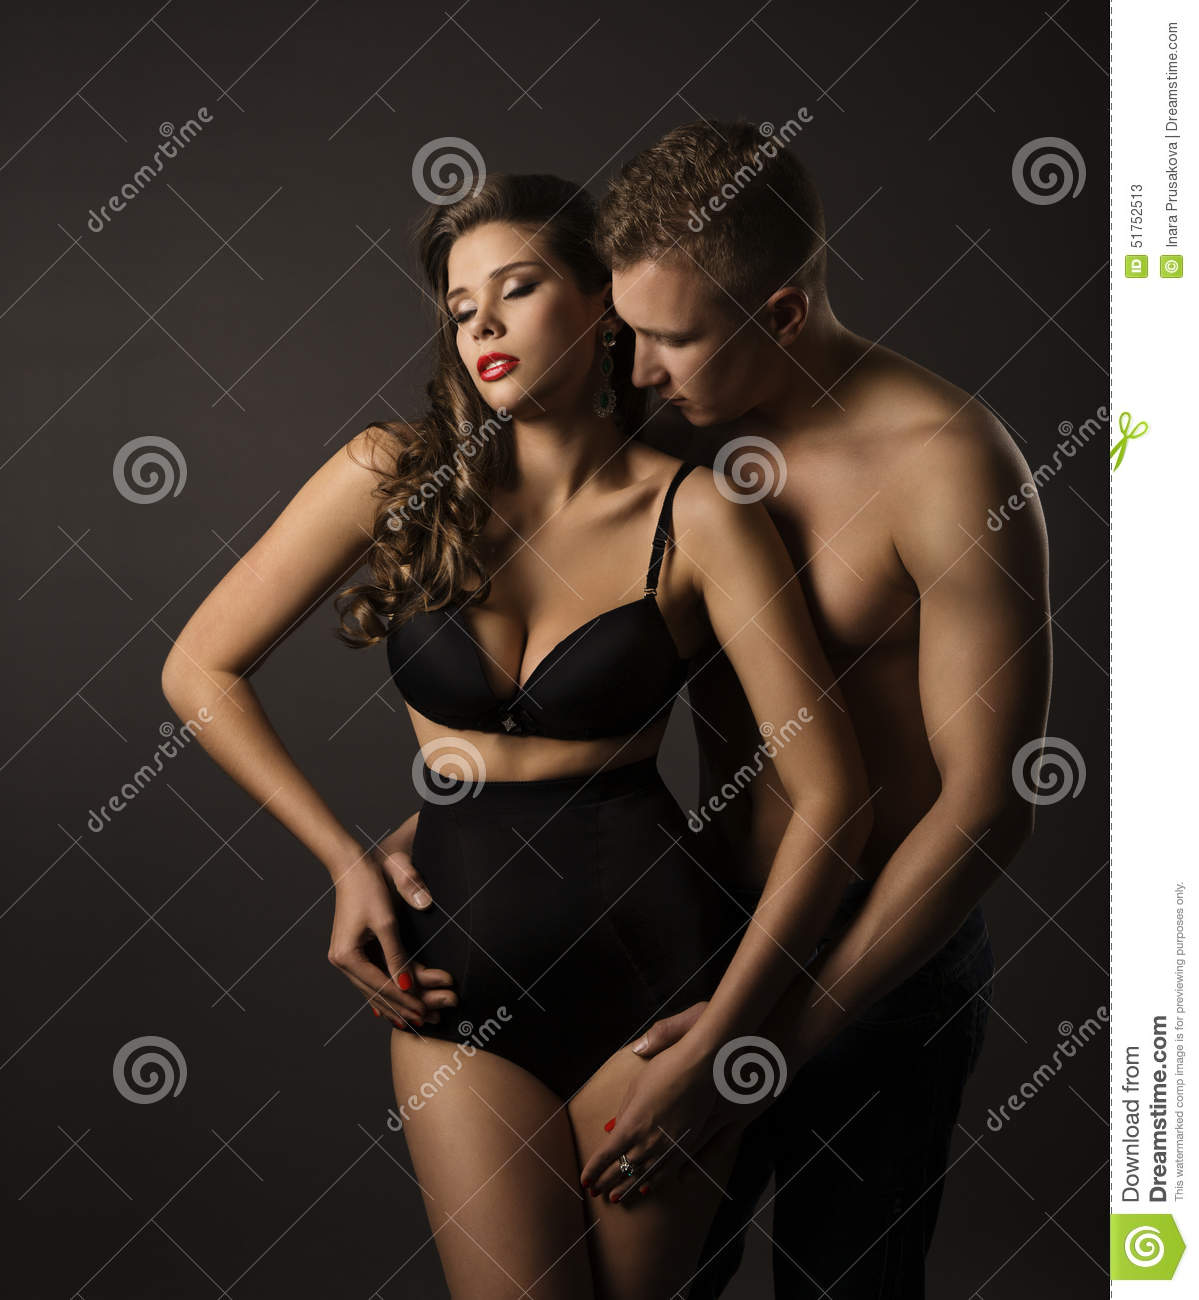 Of model couple sexy photos